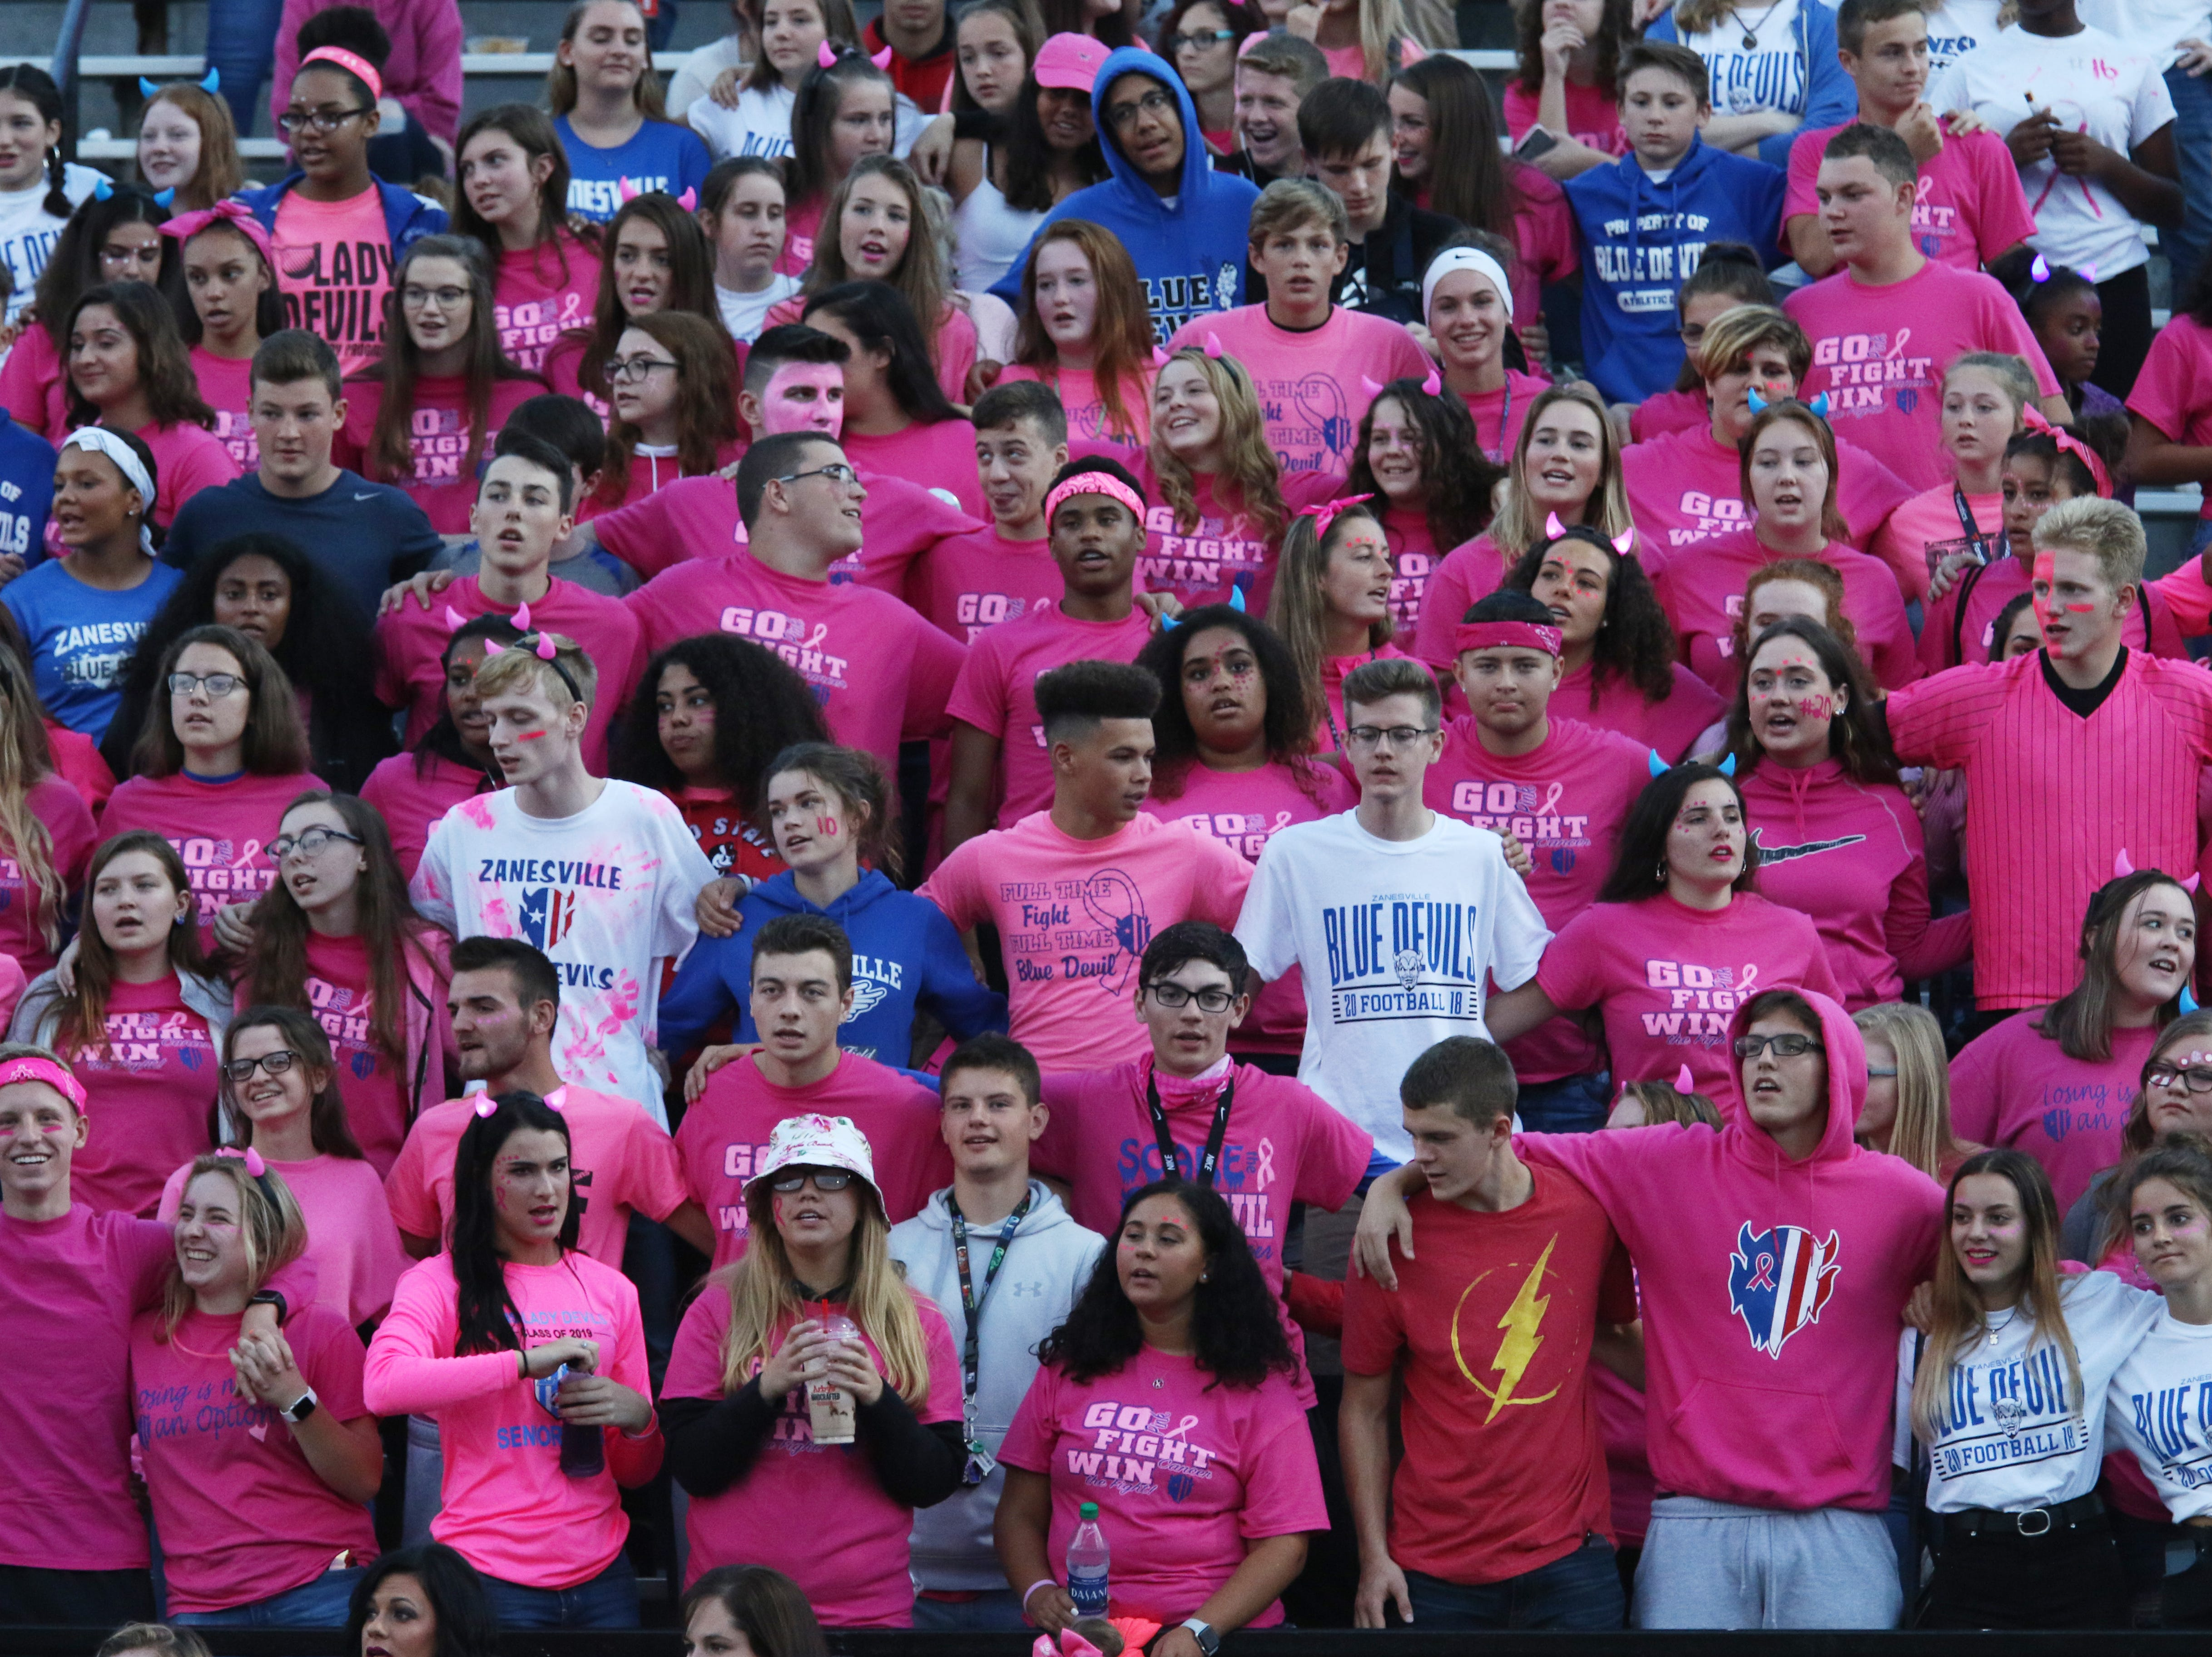 The Zanesville High School student section sings the school's alma mater.